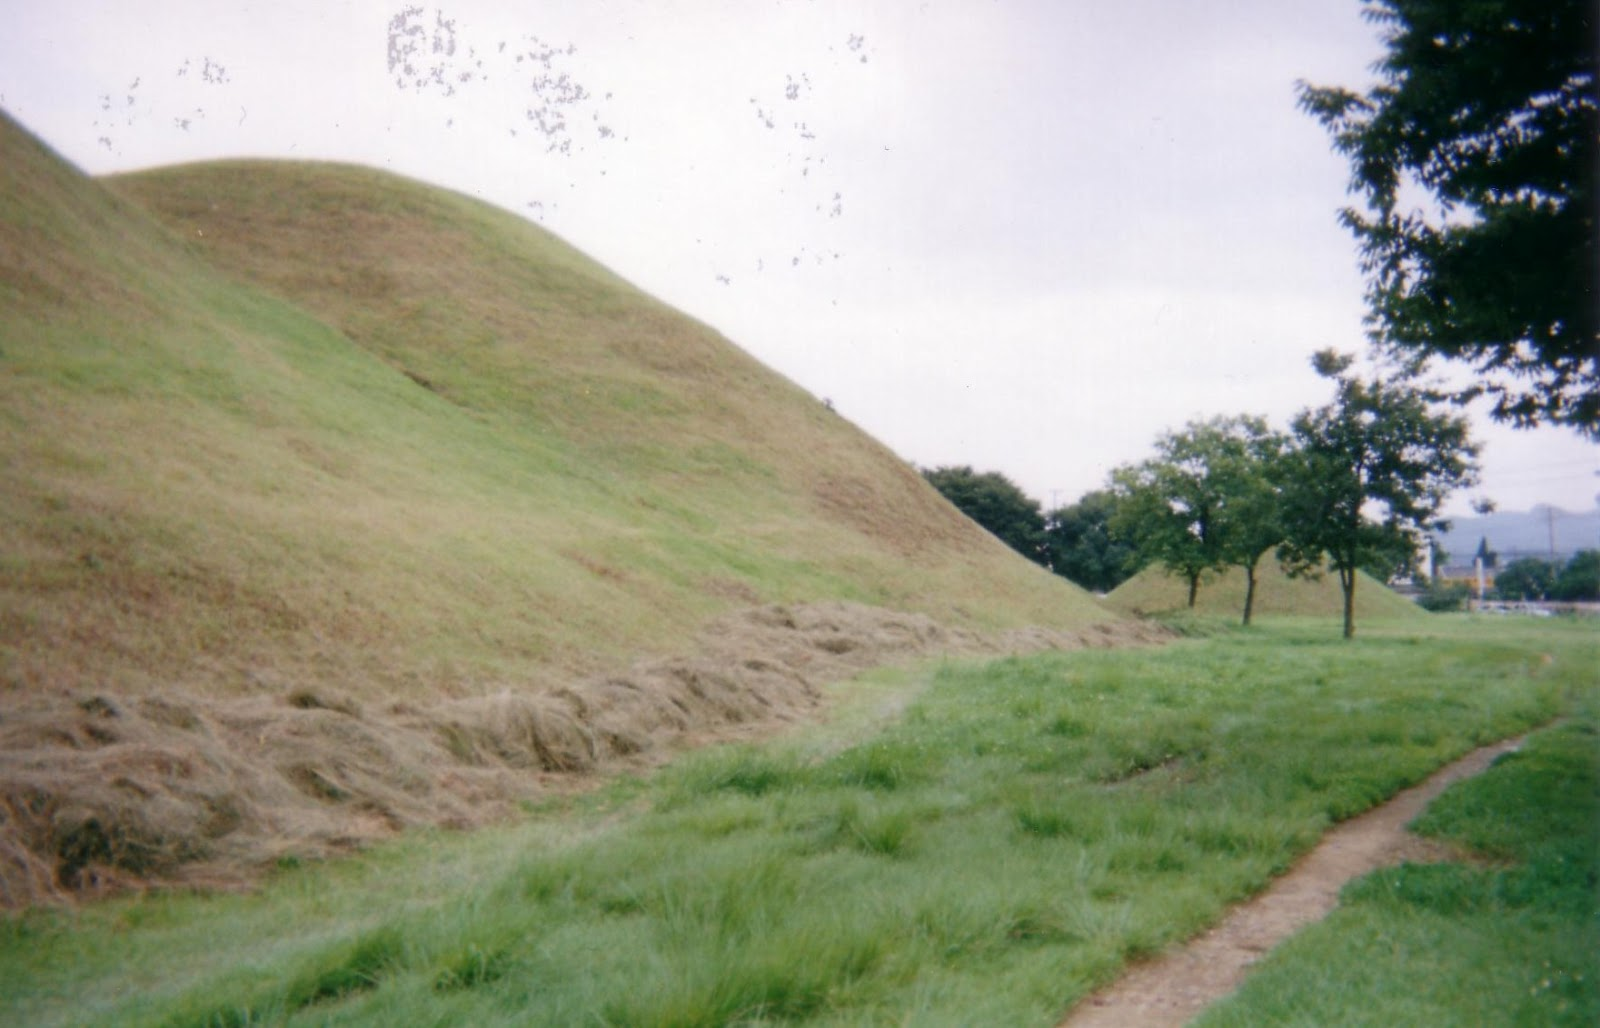 1000 amazing places 841 gyeong ju south korea for Mounding grass